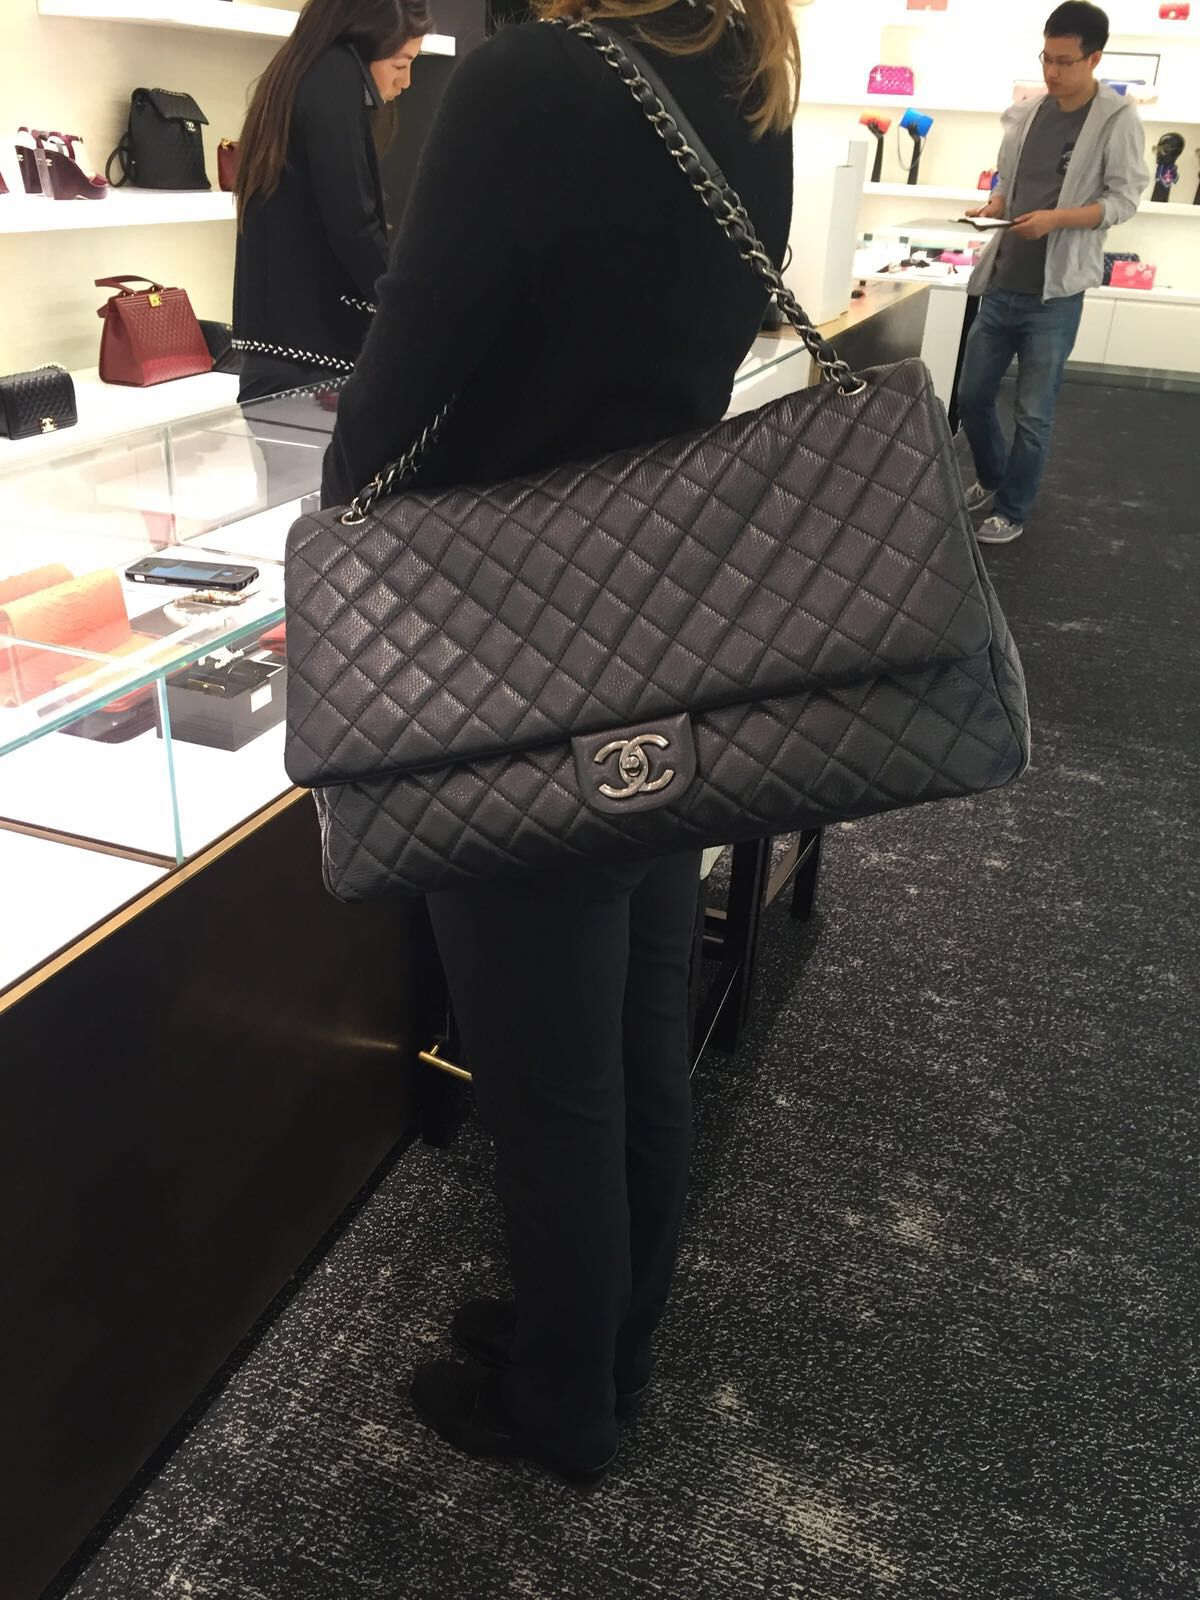 898e53ee05d7 Xxl chanel flap bag spring summer 2016 airport collection | Bags ...